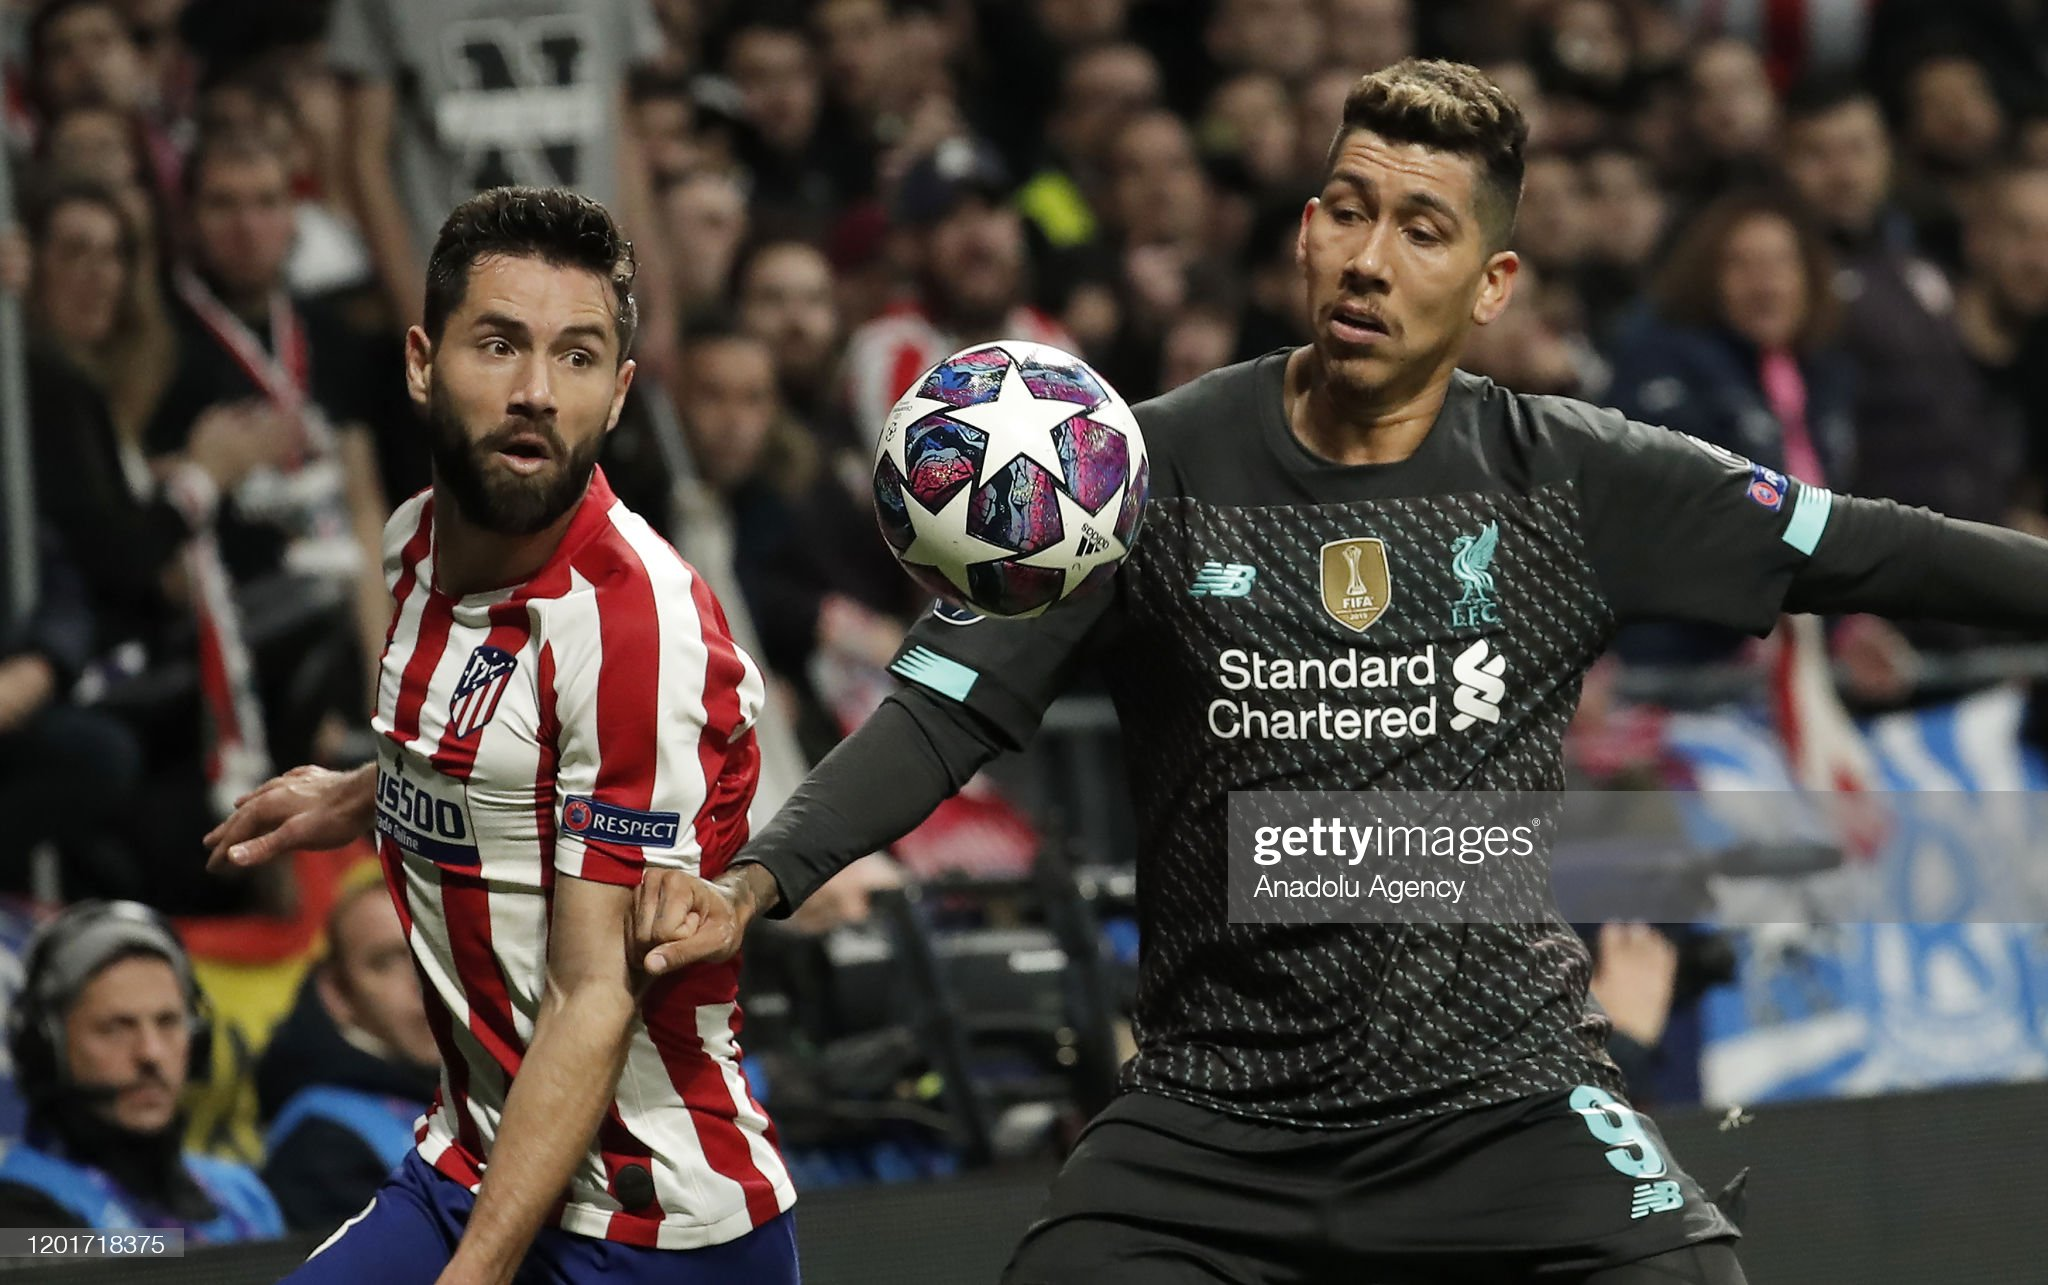 Liverpool v Atletico Madrid preview, prediction and odds